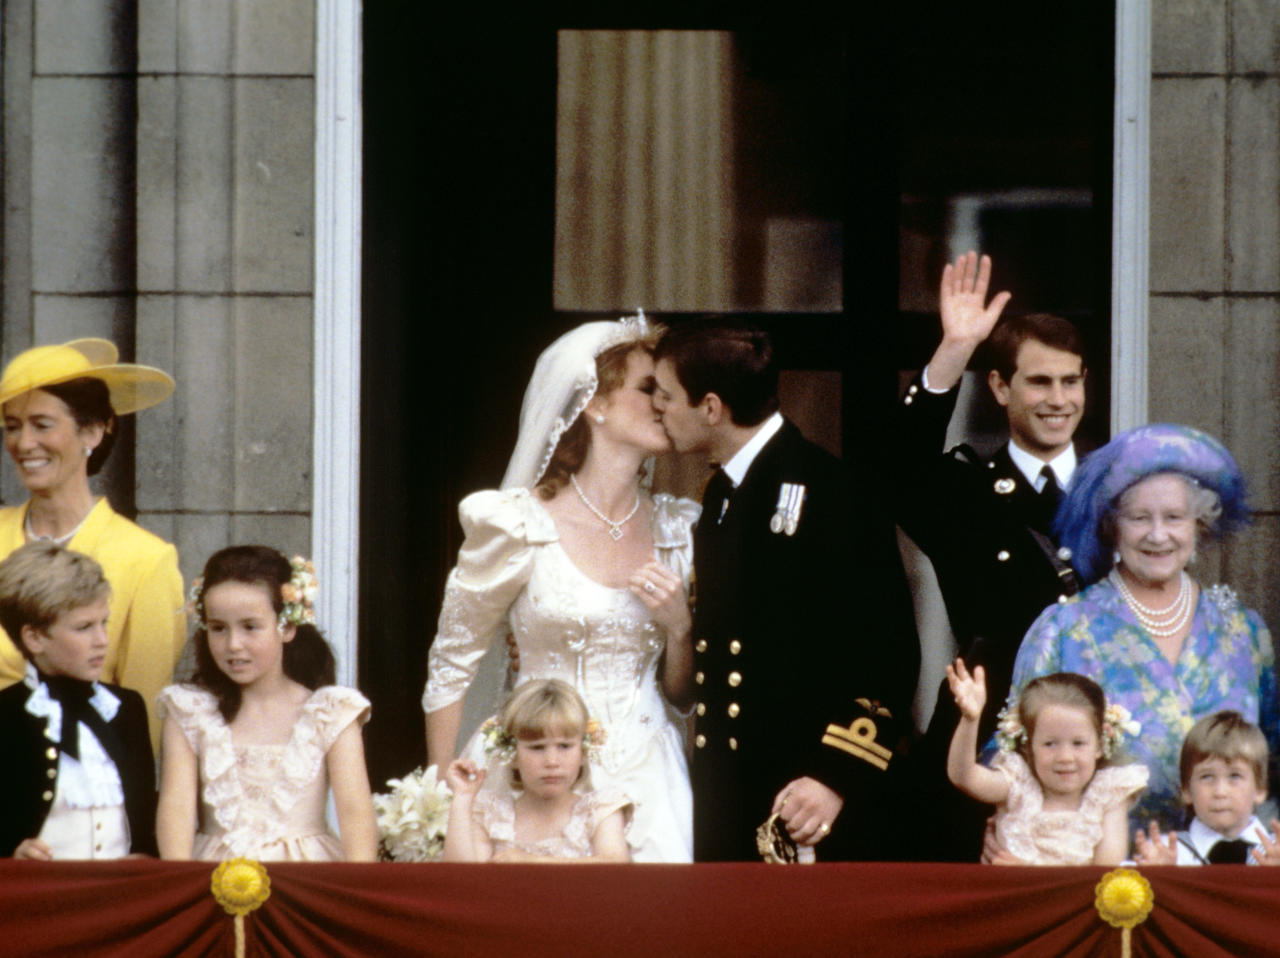 <p>Sarah Ferguson tied the knot with her ex-husband, the Duke of York, on 23 July 2986 at Westminster Abbey. Her 80s gown was typical of the flamboyant styles popular then and was copied across the world afterwards. It was designer by Lindka Cierach and made from ivory duchesse satin. Some 2,000 guests attended the ceremony, including Prime Minister Margaret Thatcher and US First Lady Nancy Reagan. <em>[Photo: PA Images]</em> </p>